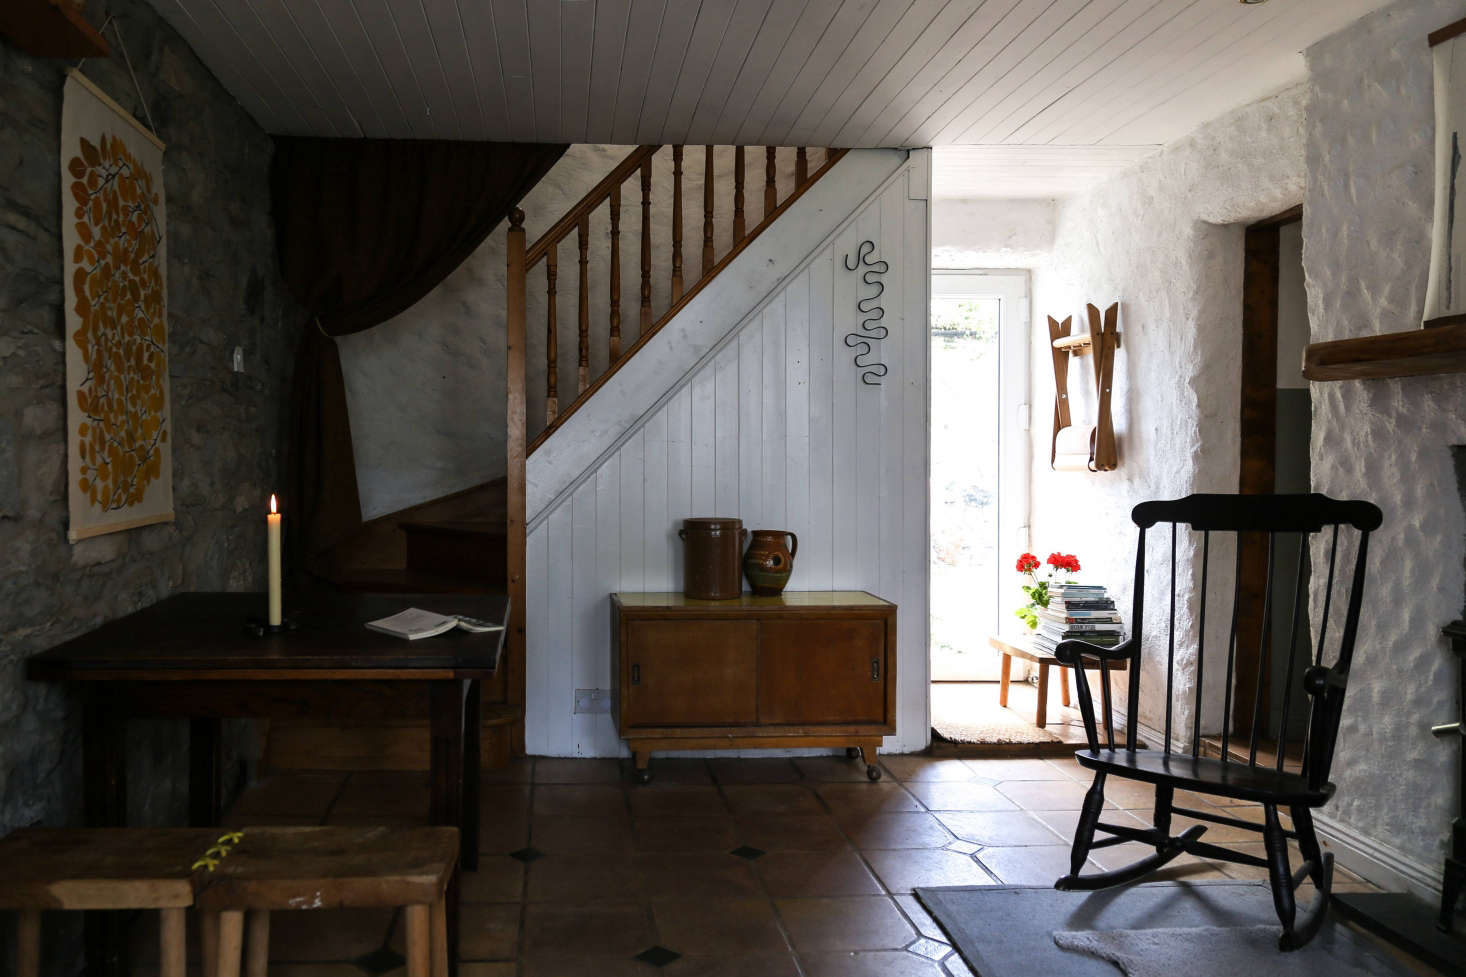 The House Has Two Rooms Downstairs Plus A Galley Kitchen And Bedrooms Upstairs